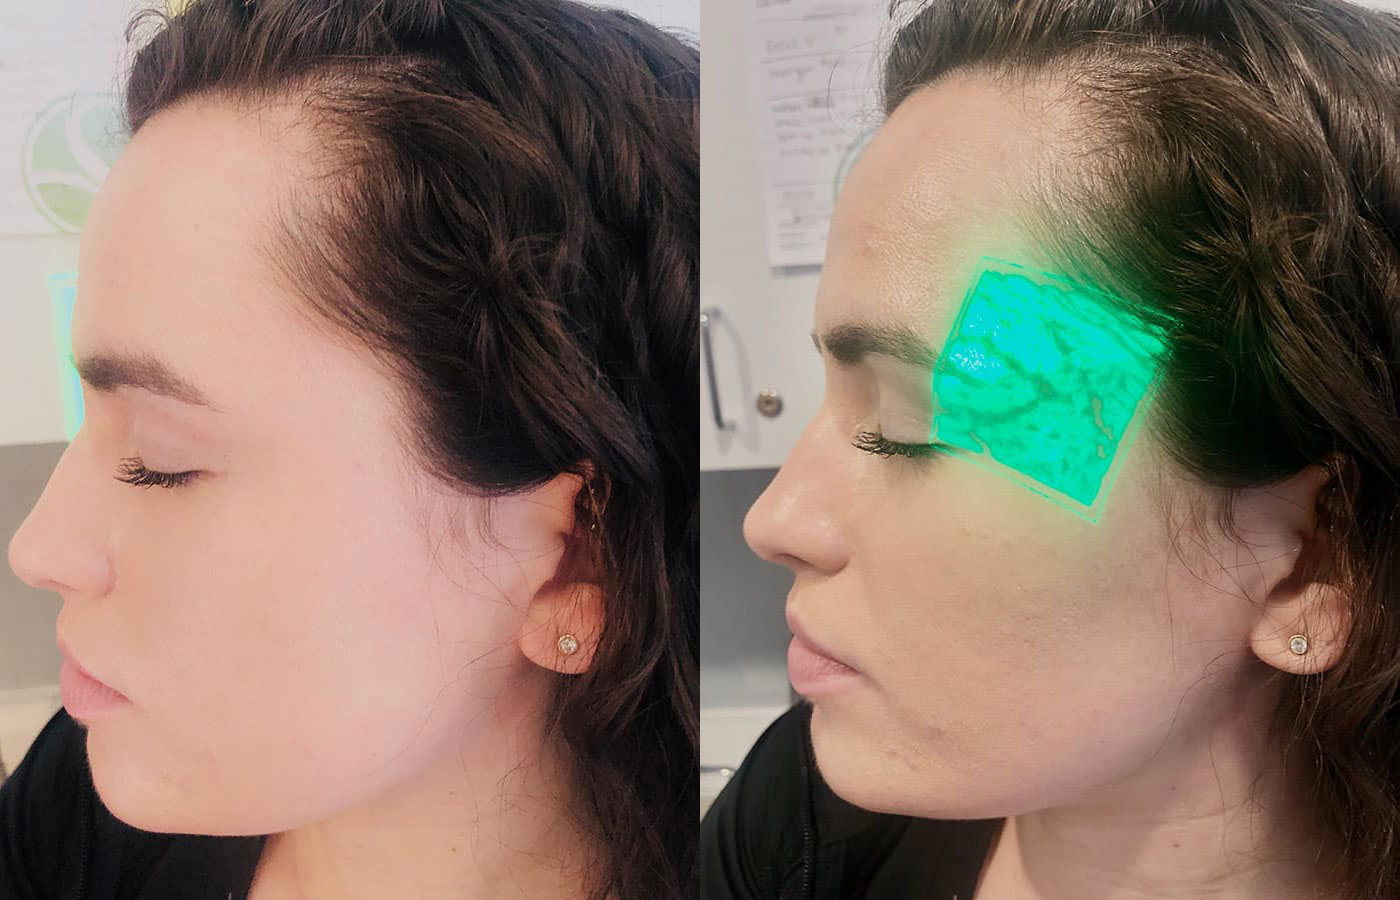 Woman's face, before and after Accuvein treatment, side view